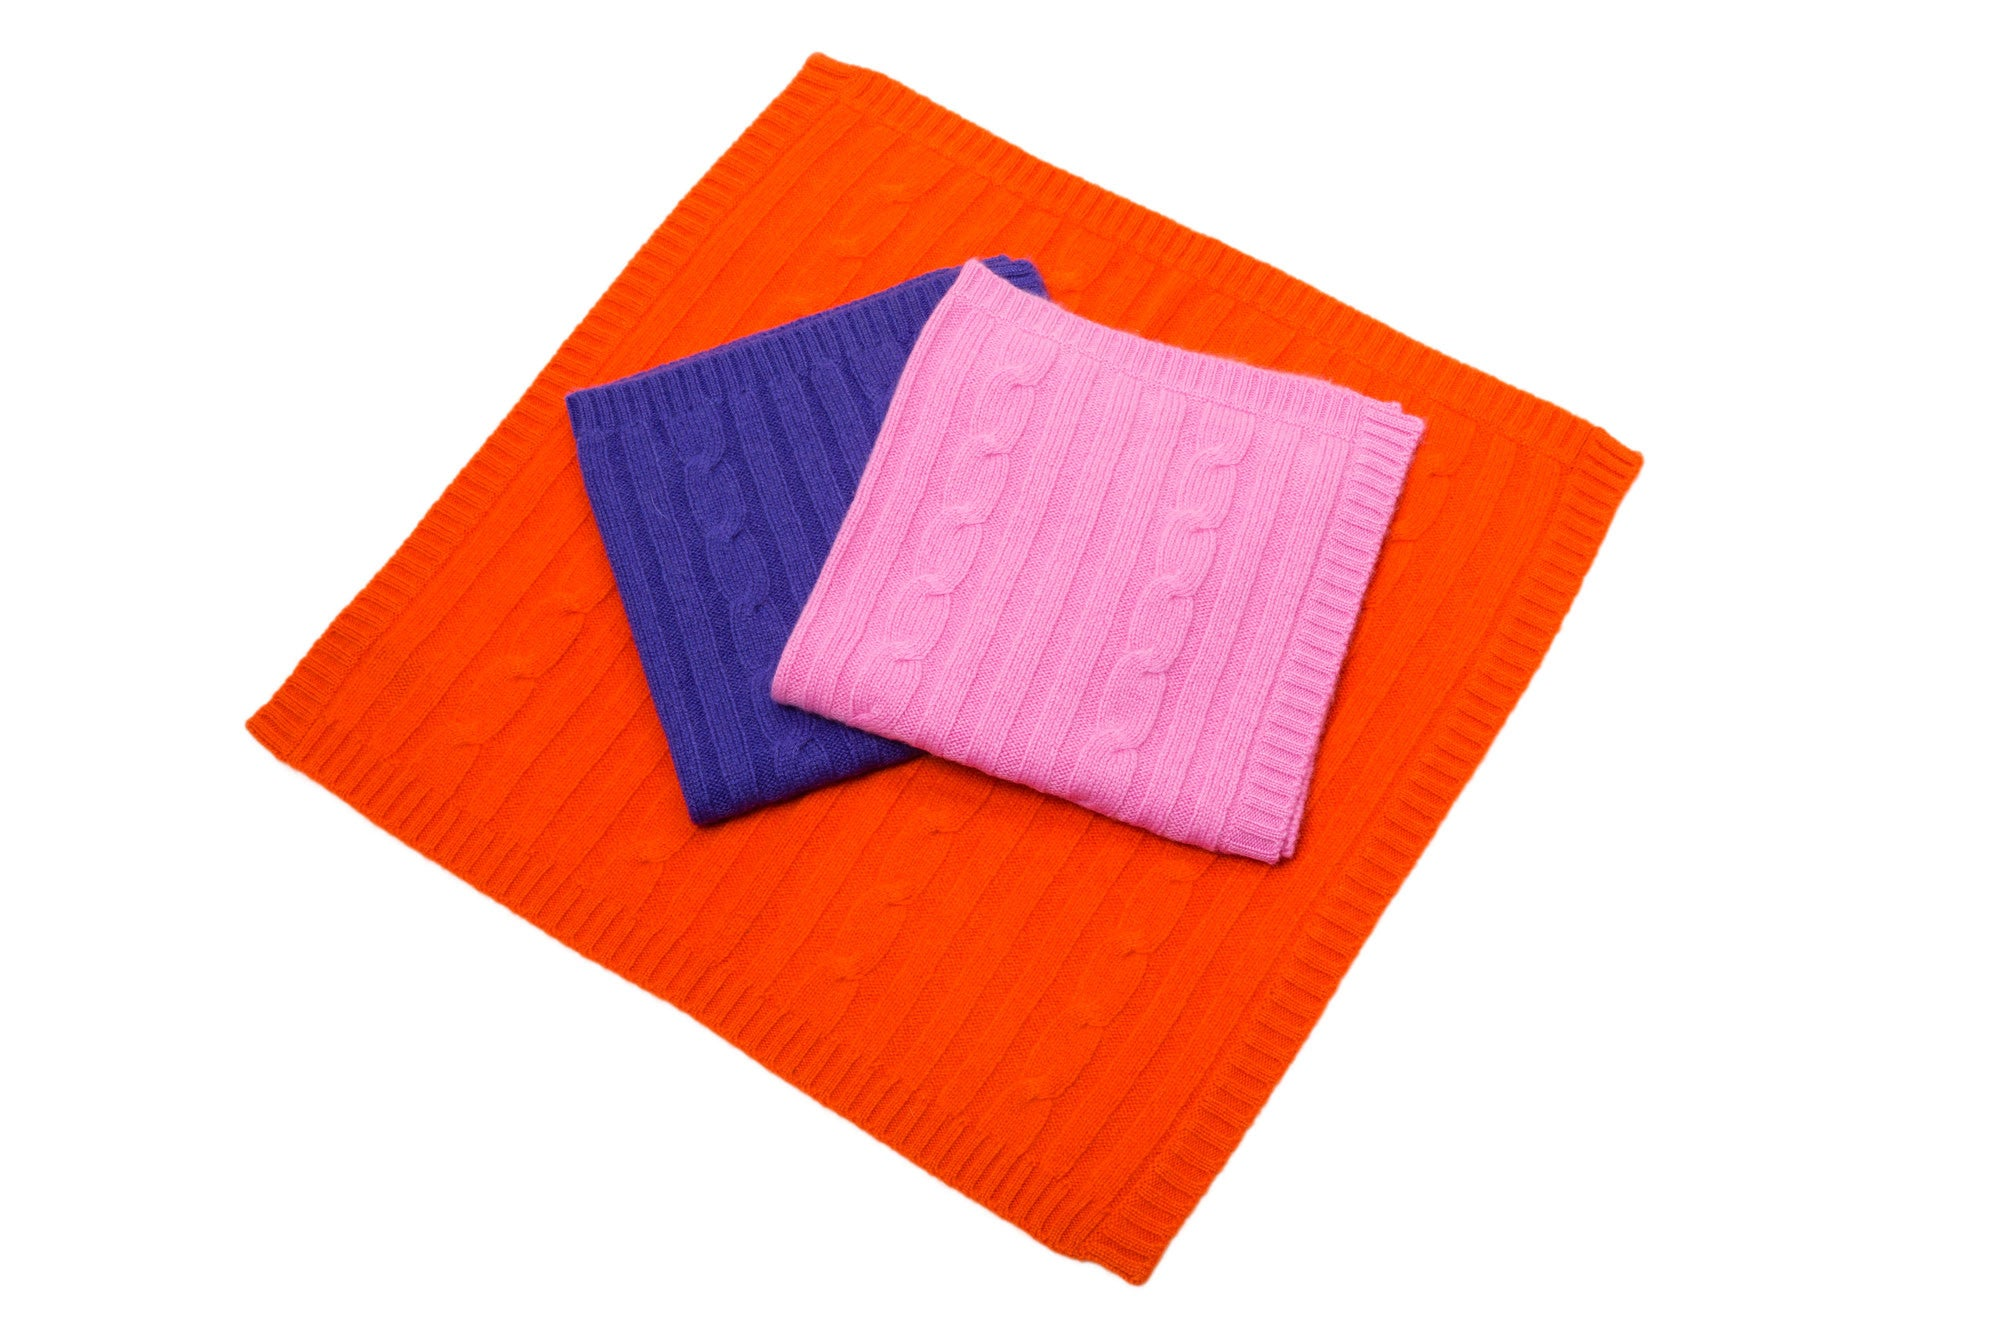 Cashmere Blanket - Orange, Purple, or Pink - Canine Styles - Dog Blanket - 5 Color Options